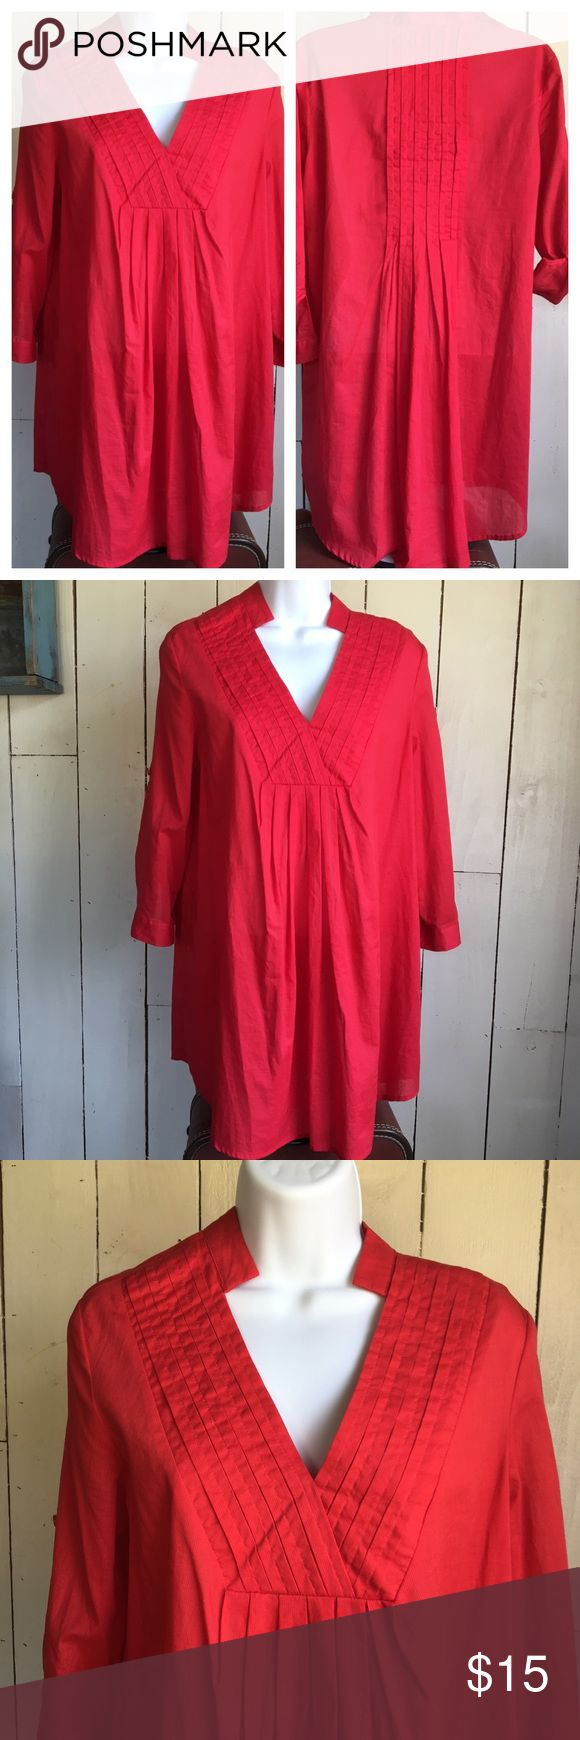 Red Maternity Tunic Top 23rdSt Stylish red maternity tunic by 23rdSt. In very nice condition. The fabric is light and cool 100% cotton. 3/4 Sleeve that can be rolled and buttoned above the elbow. There are loops for an added belt if desired. The fabric is not shiny, that is a lighting issue in the photograph. Please let me know if you have any questions. Make an offer or Place this top in a bundle for a personal discount offer.  (118) 23rd Street Tops Tunics